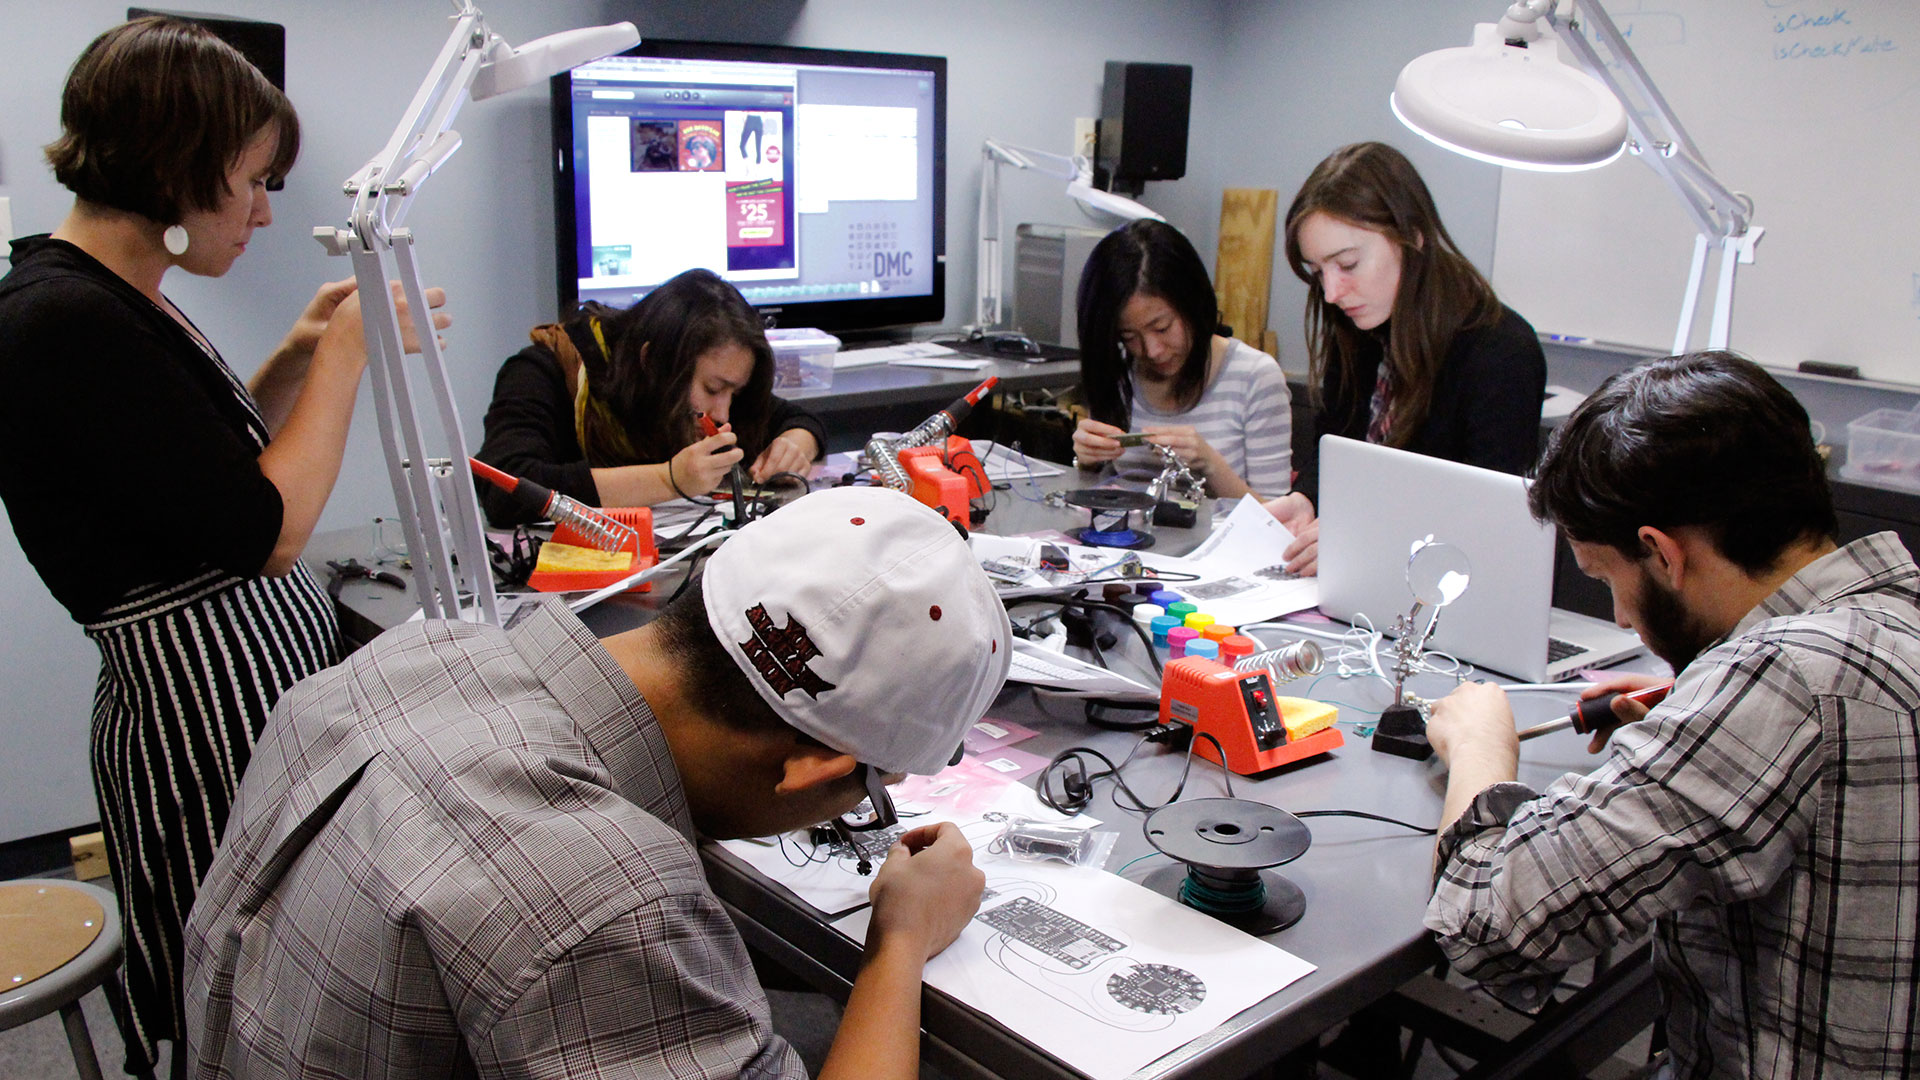 Group of students crowded around workbench for a DMC Makerspace Workshop